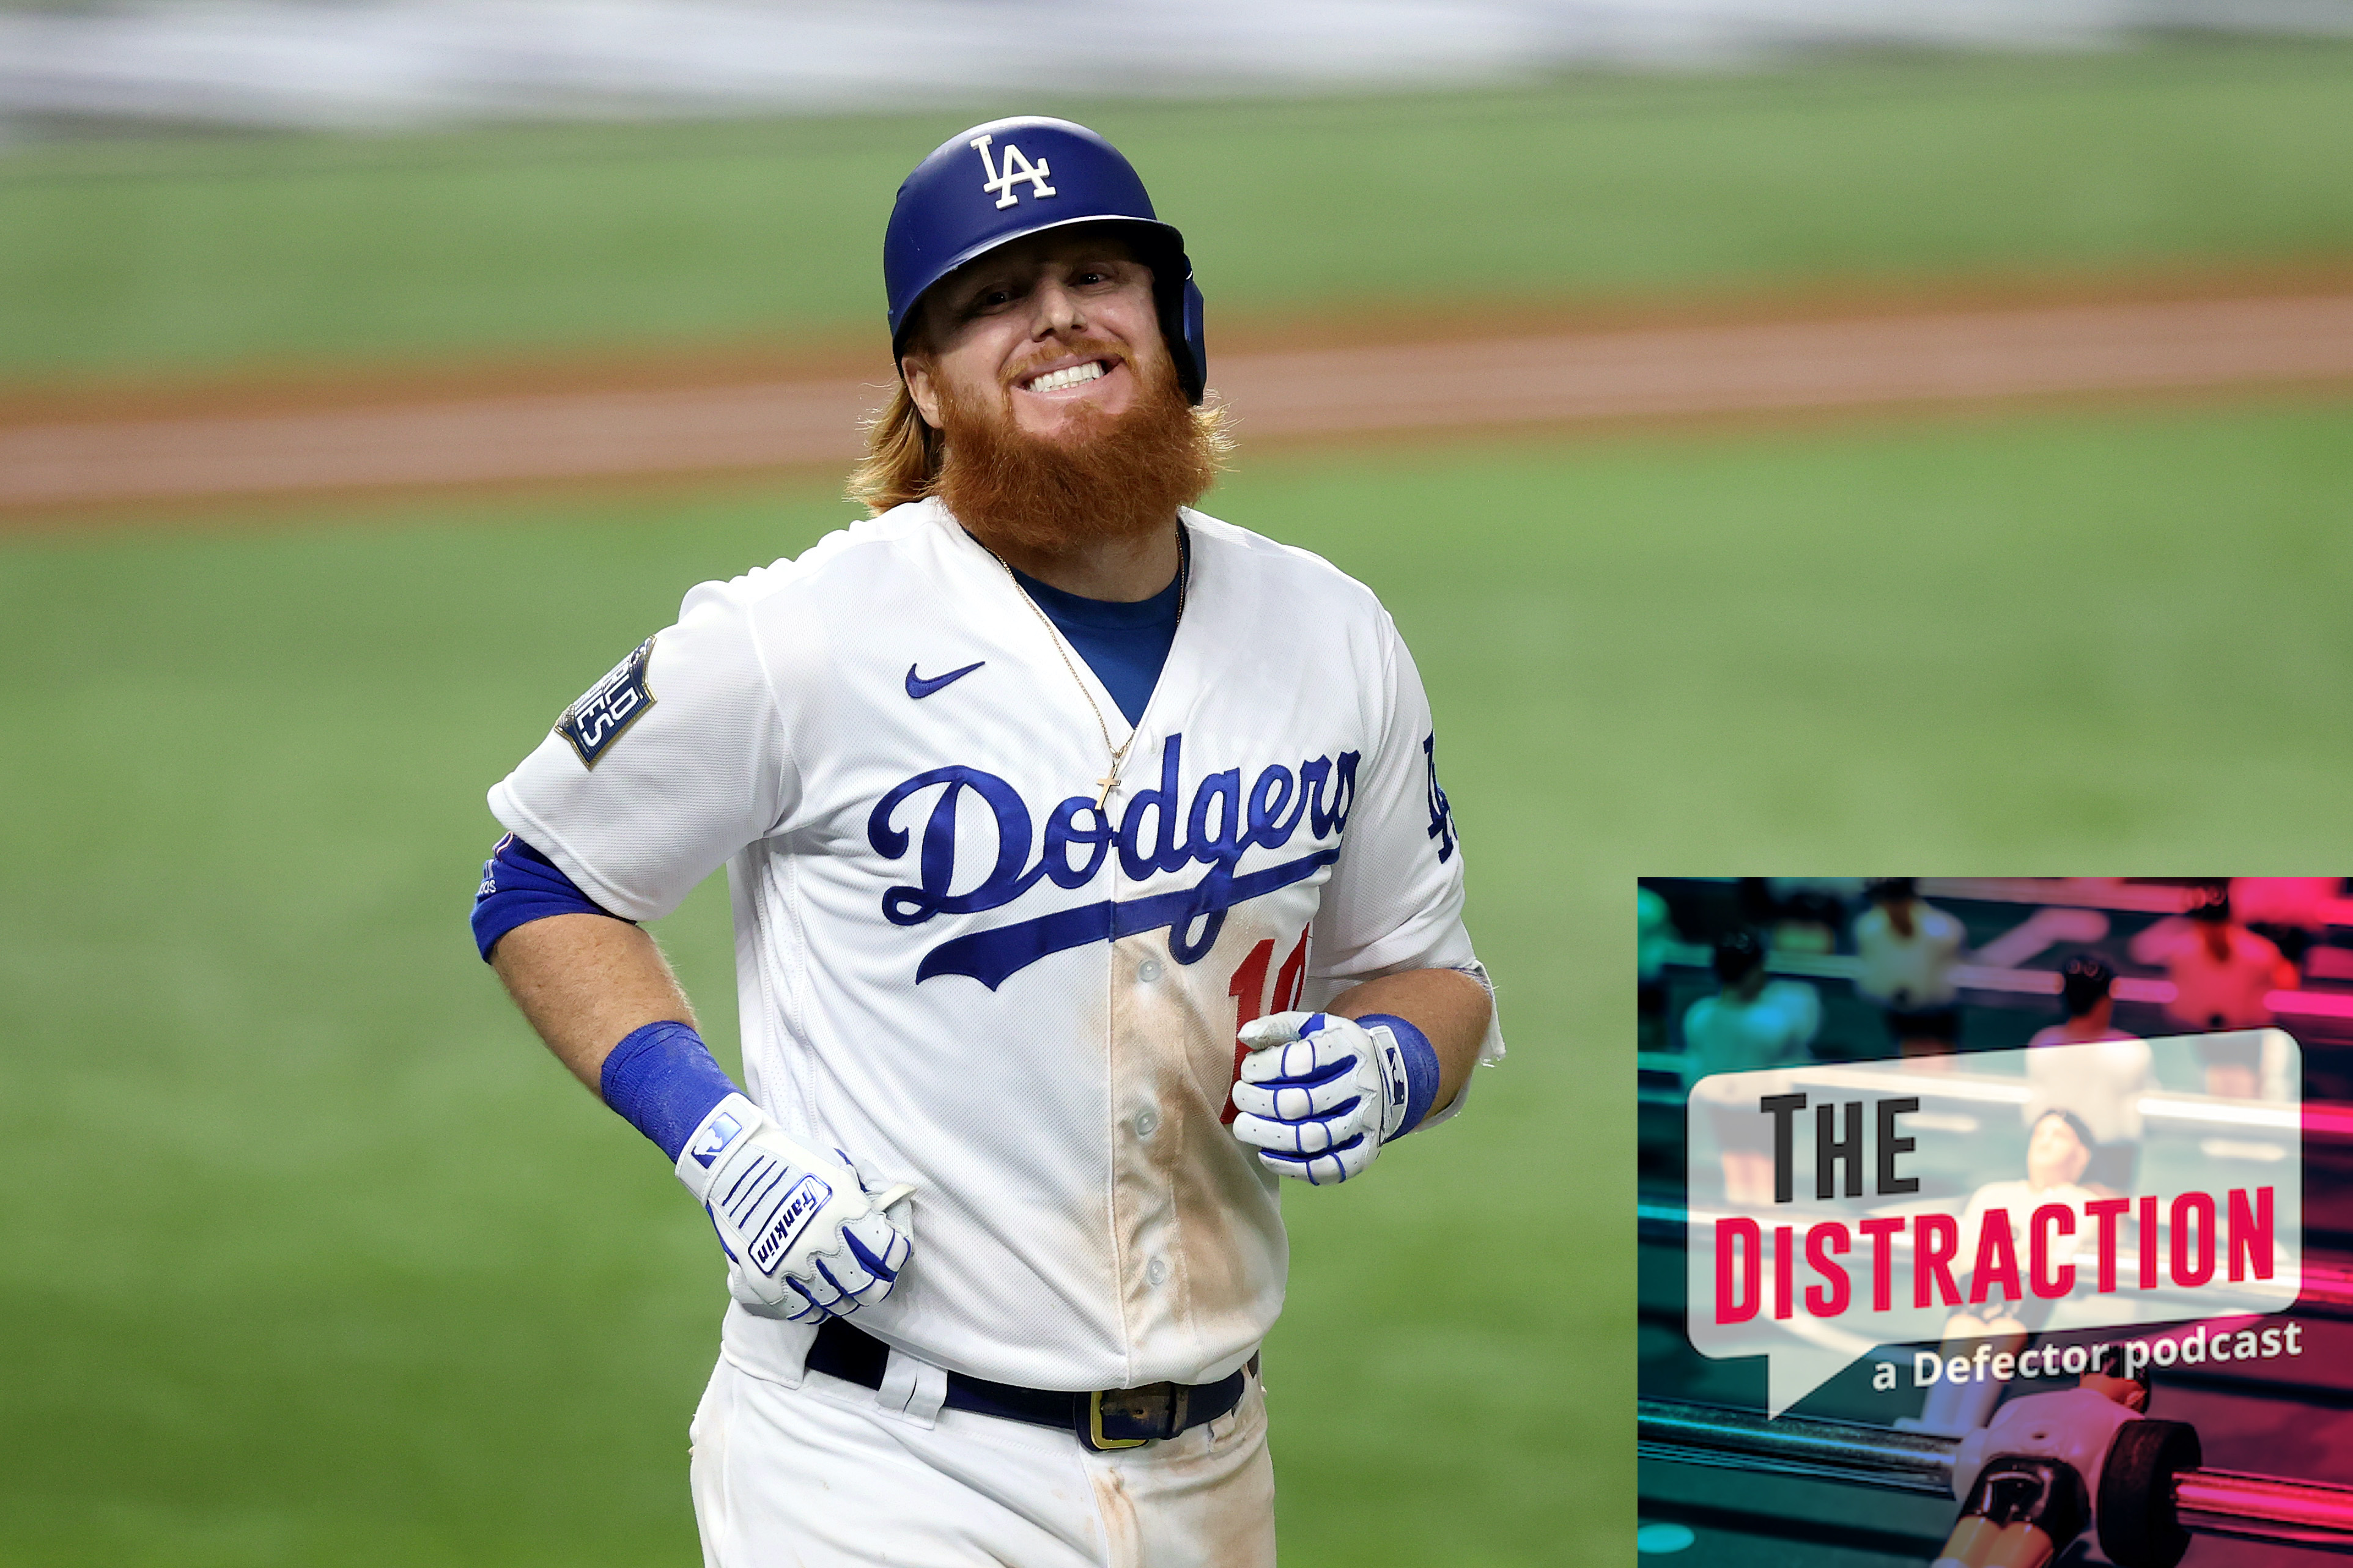 Justin Turner grimaces after nearly hitting a home run in Game 6 of the World Series, while aware he'd tested positive for Covid-19.